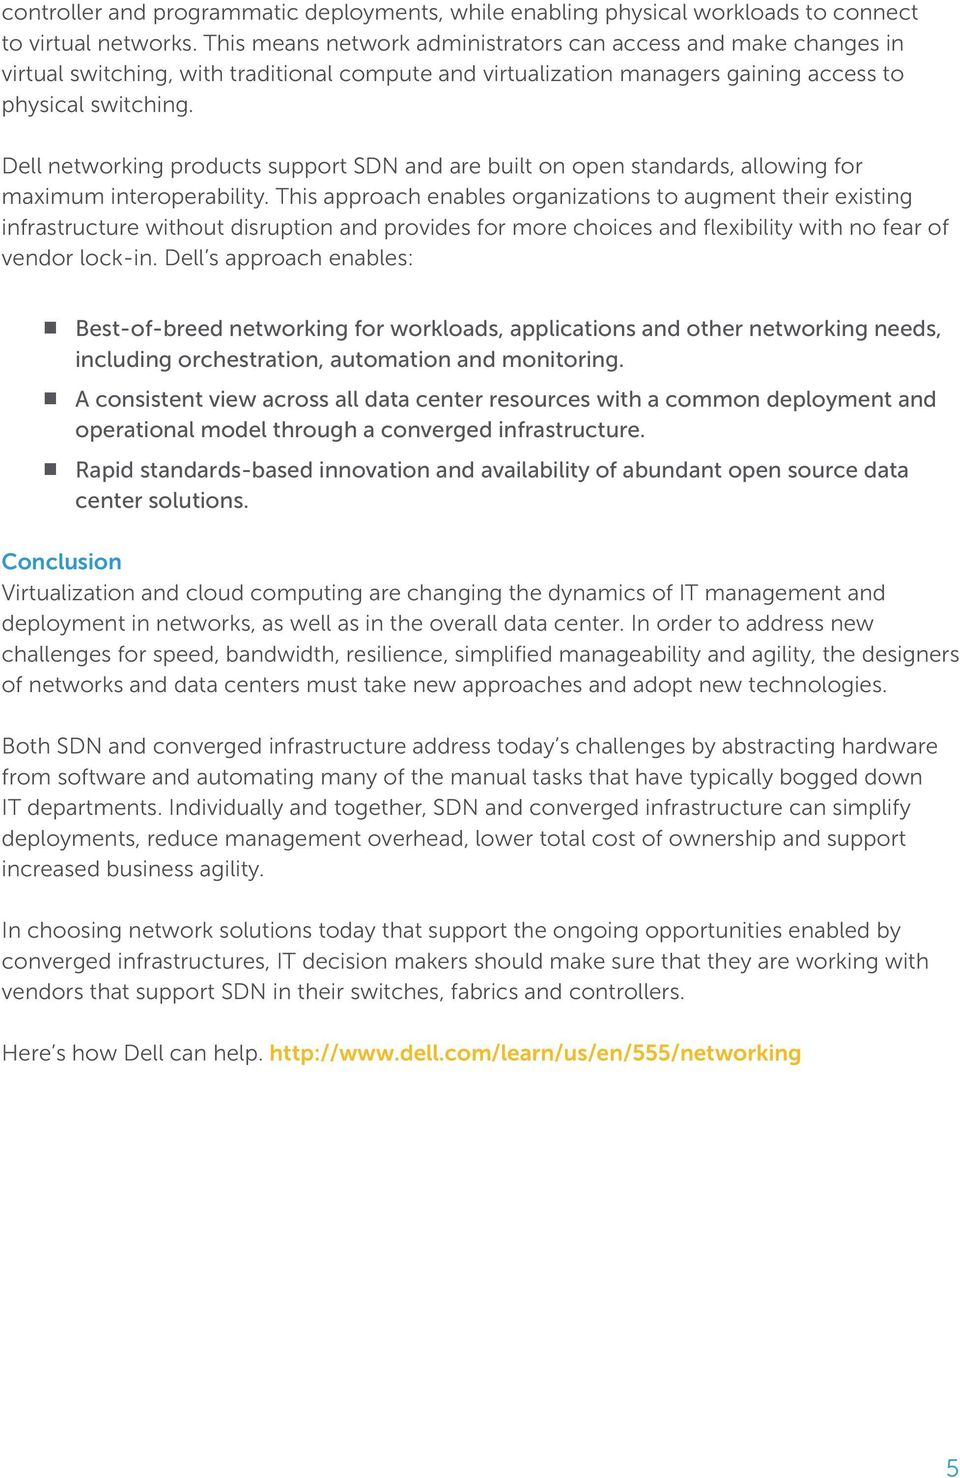 Dell networking products support SDN and are built on open standards, allowing for maximum interoperability.